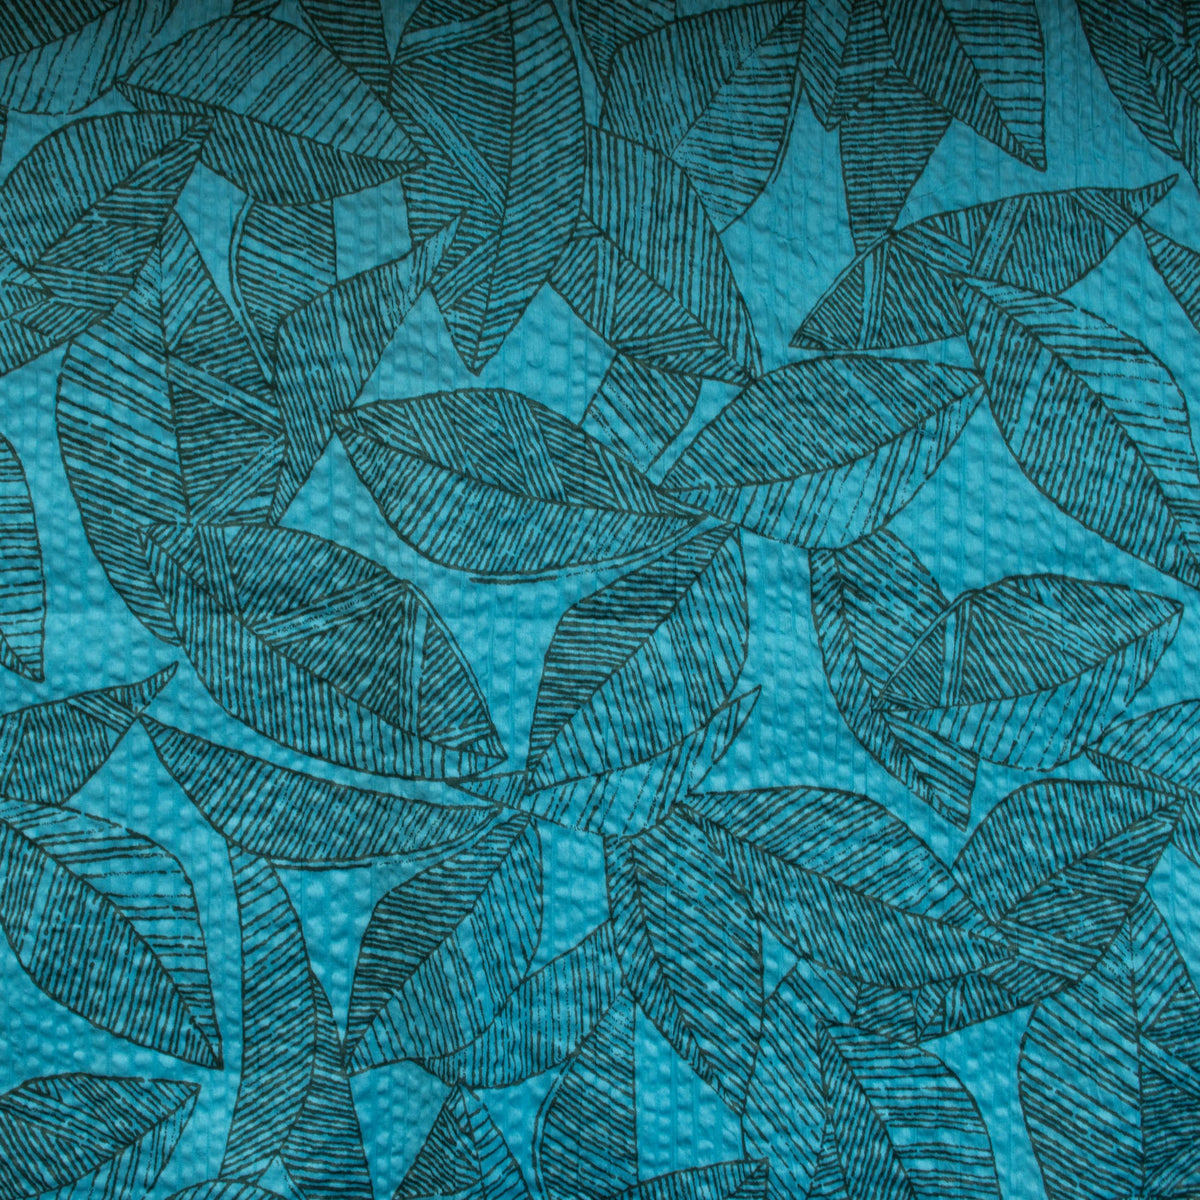 Japanese Crinkle Cotton - Wilderness - Deep Teal - MaaiDesign